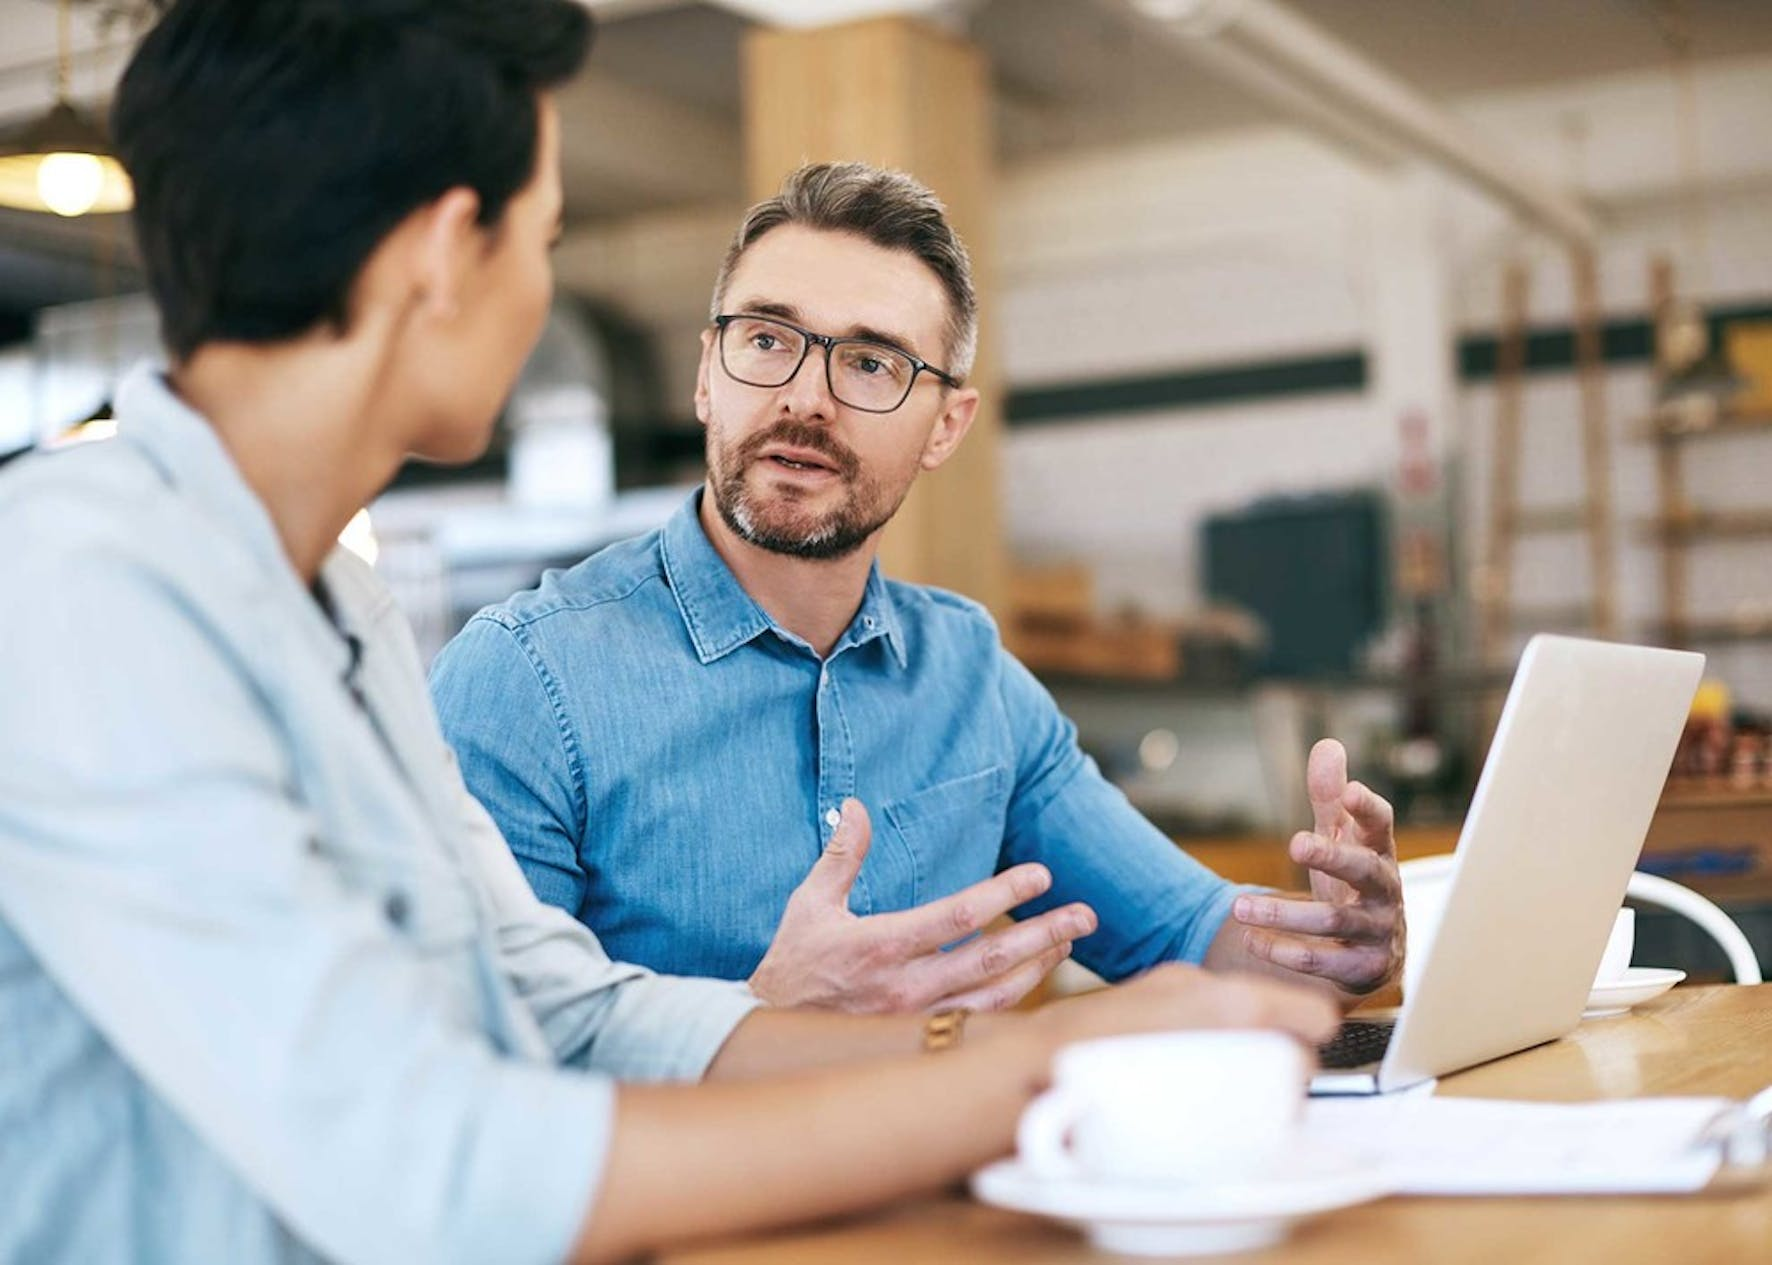 Man practicing leadership skill with coworker.